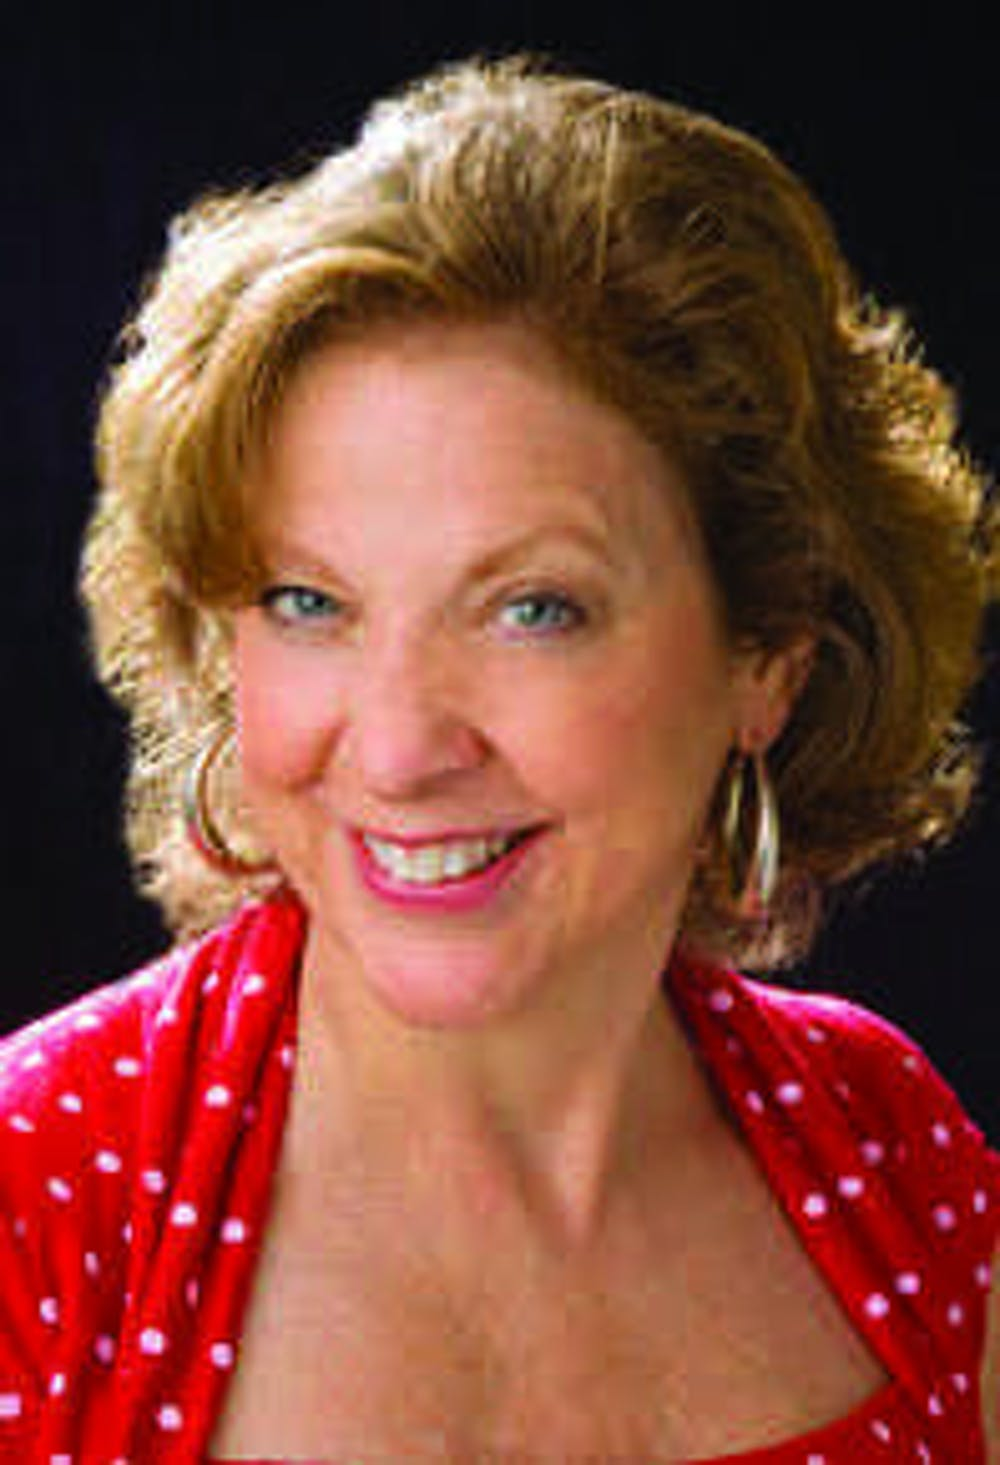 Martha Malone is Townsend's chair of vocal studies and director of opera. She will be performing alongside Robert Kosowski in the upcoming faculty art recital.